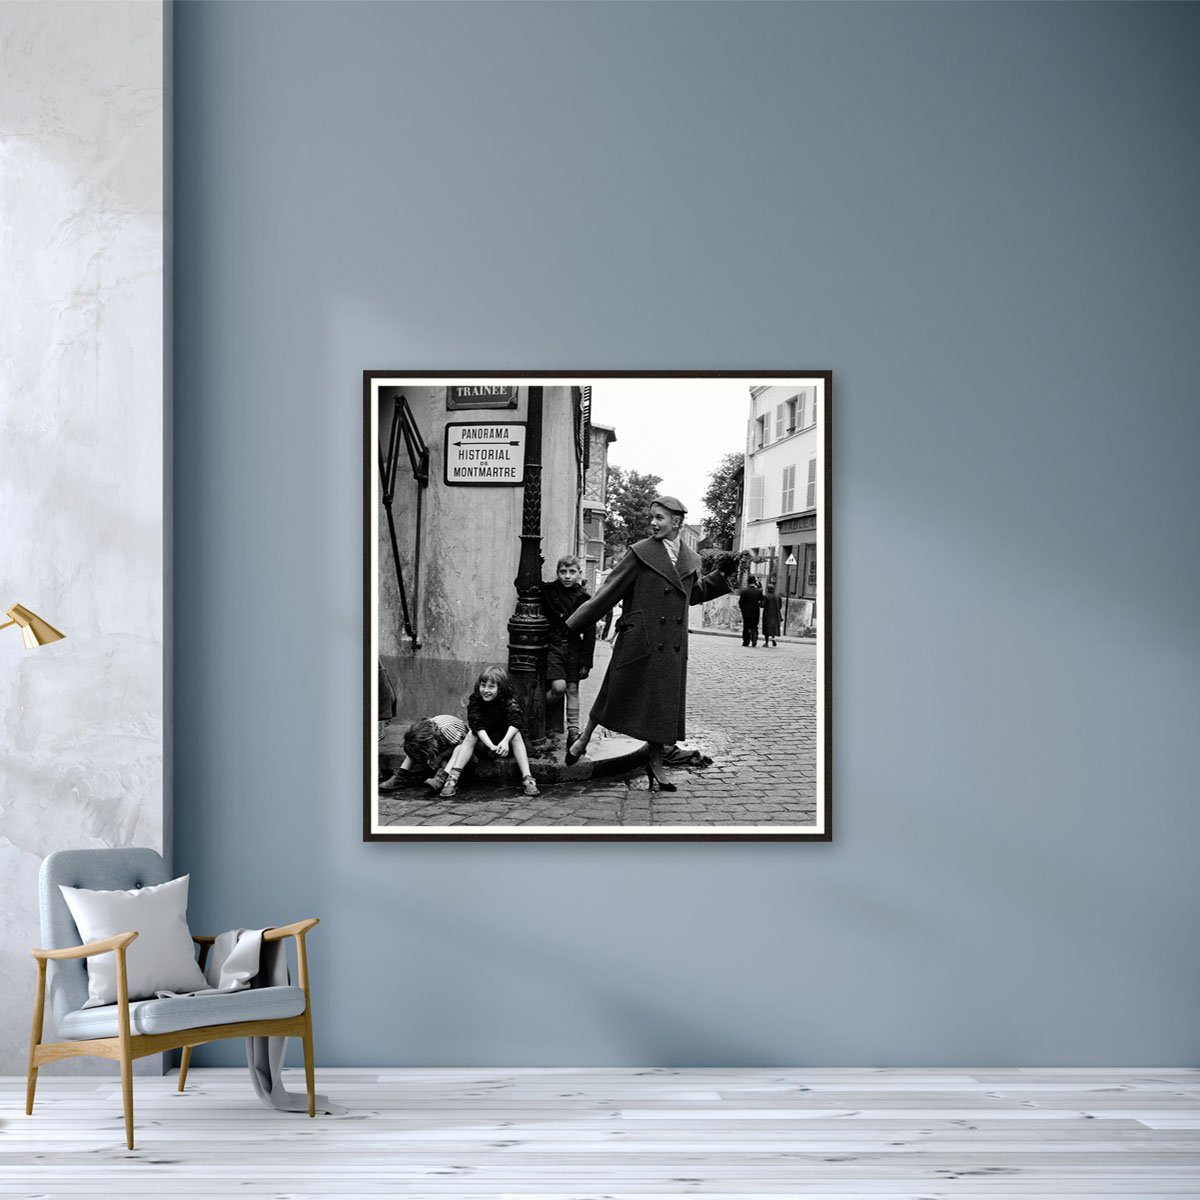 9 Paris P.A.P Montmarte 1950 Kids on Curbstone by Marilyn Stafford